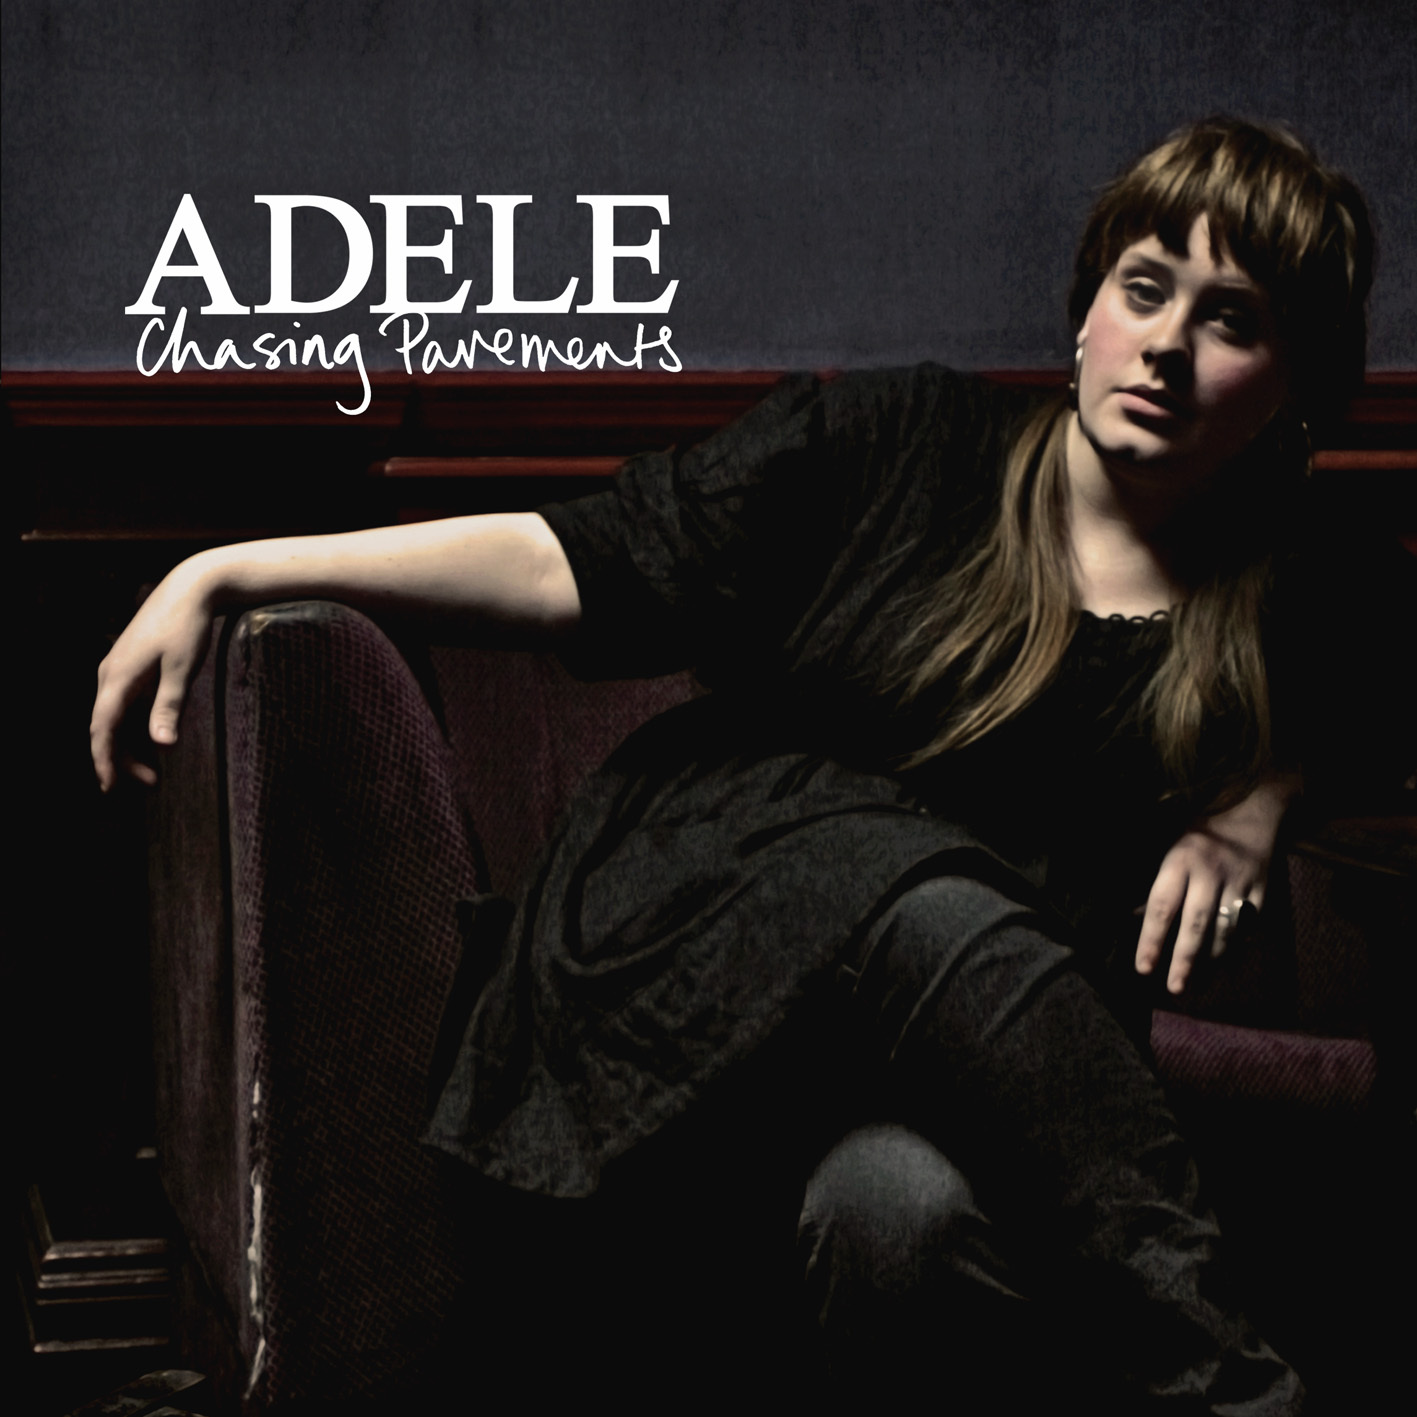 Cover: Chasing pavements, Adele